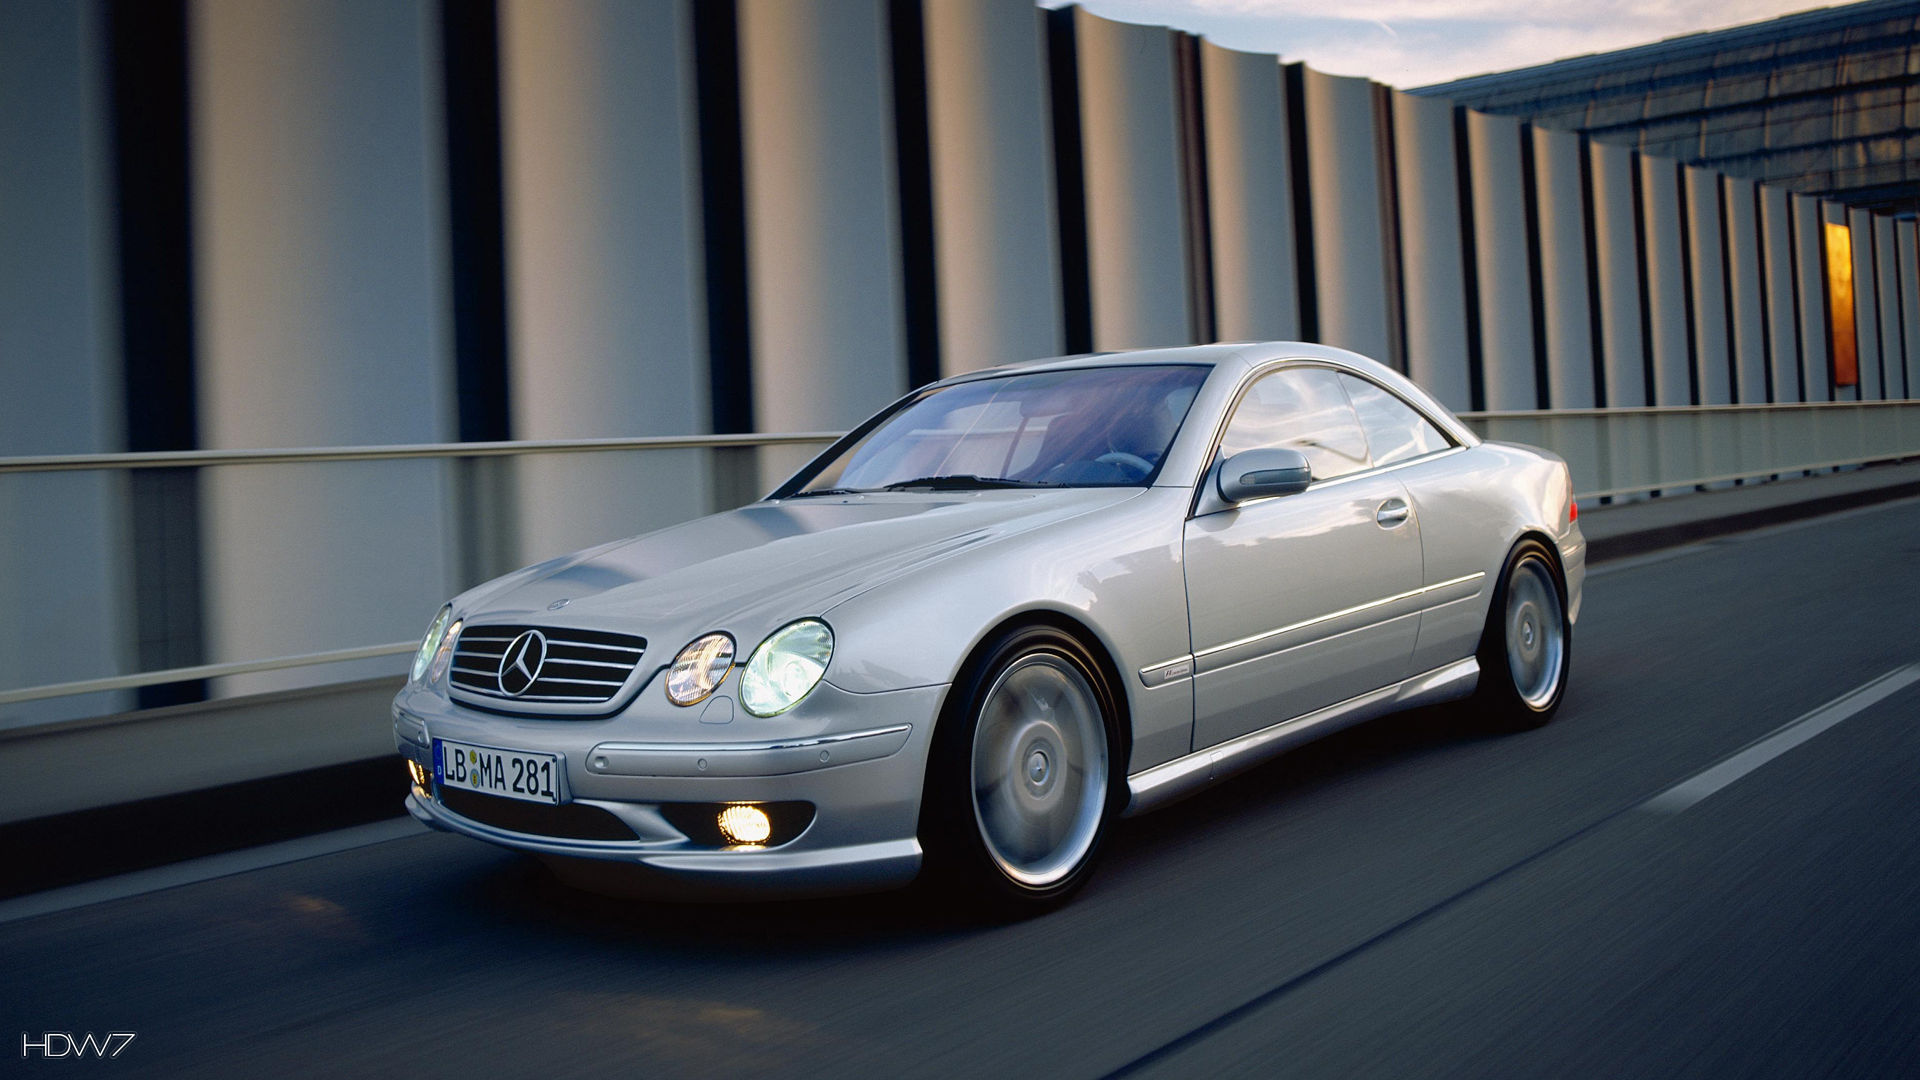 mercedes benz cl55 amg f1 limited edition 2000 car hd wallpaper